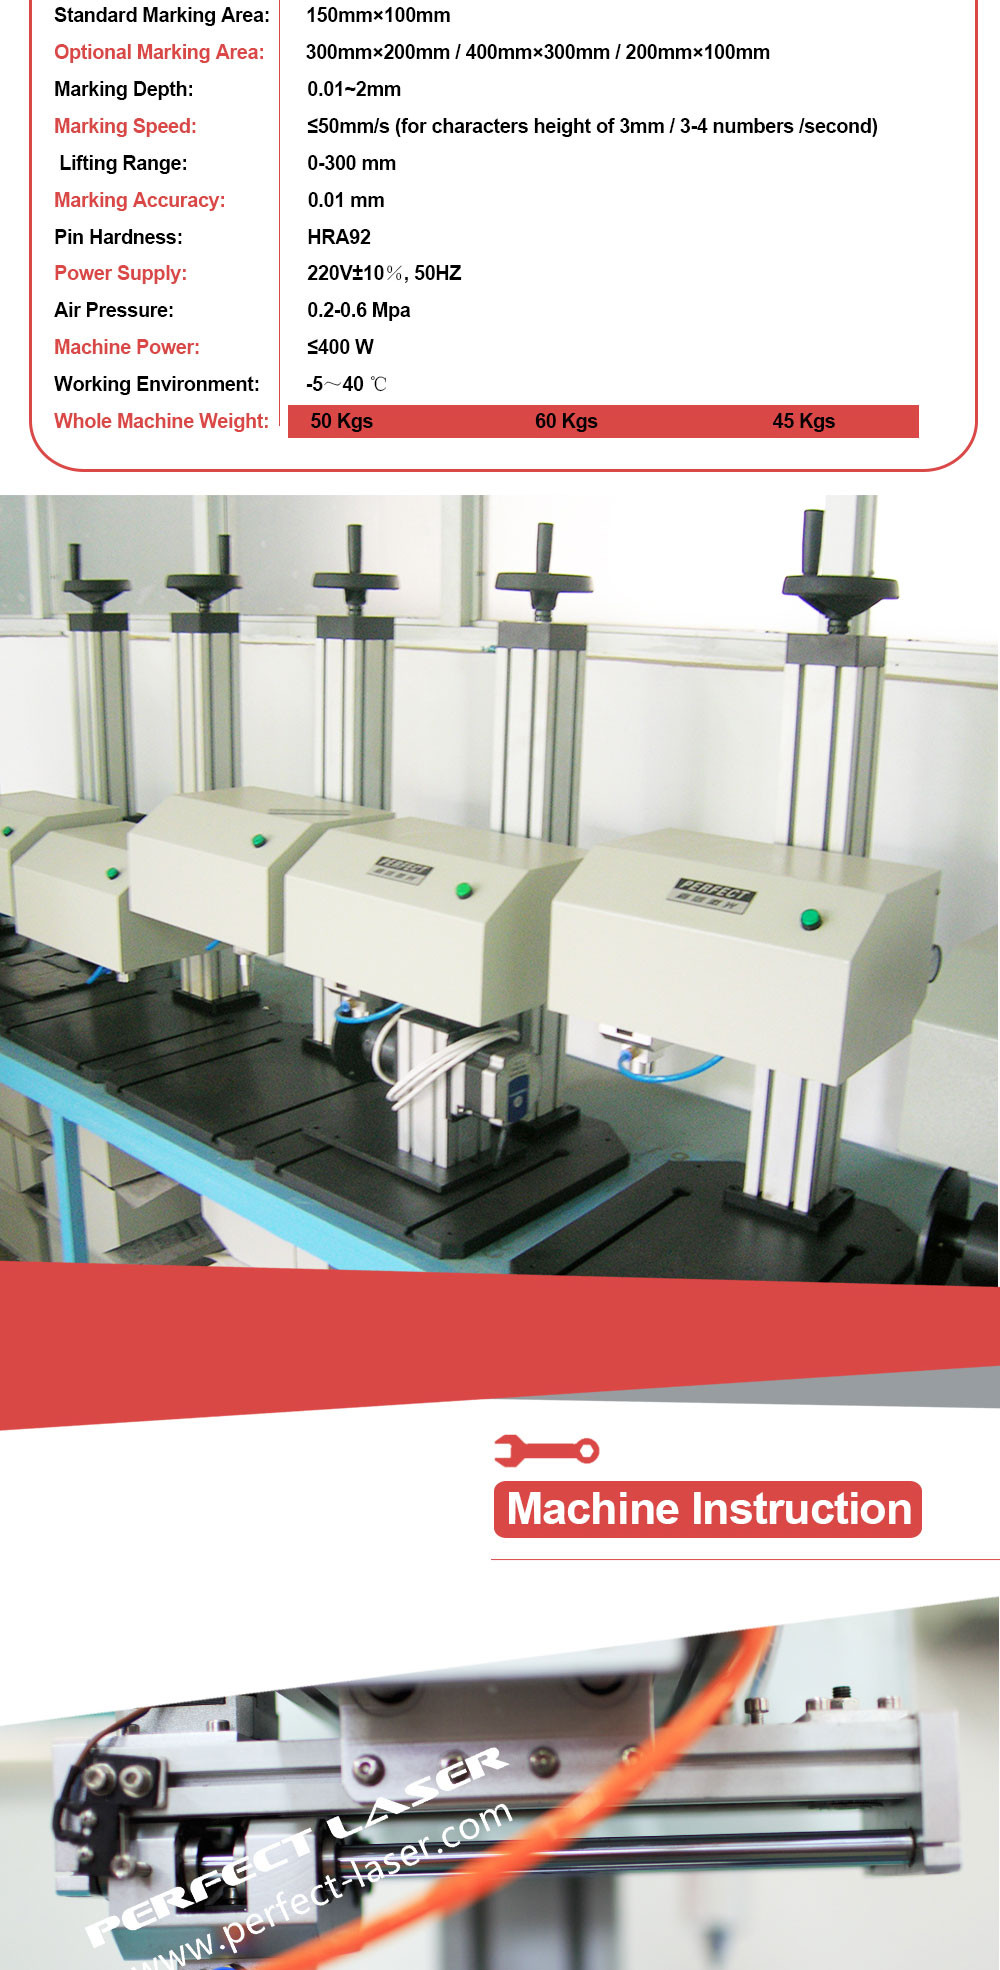 VIN code name plate chassis number pneumatic scribing marking machine